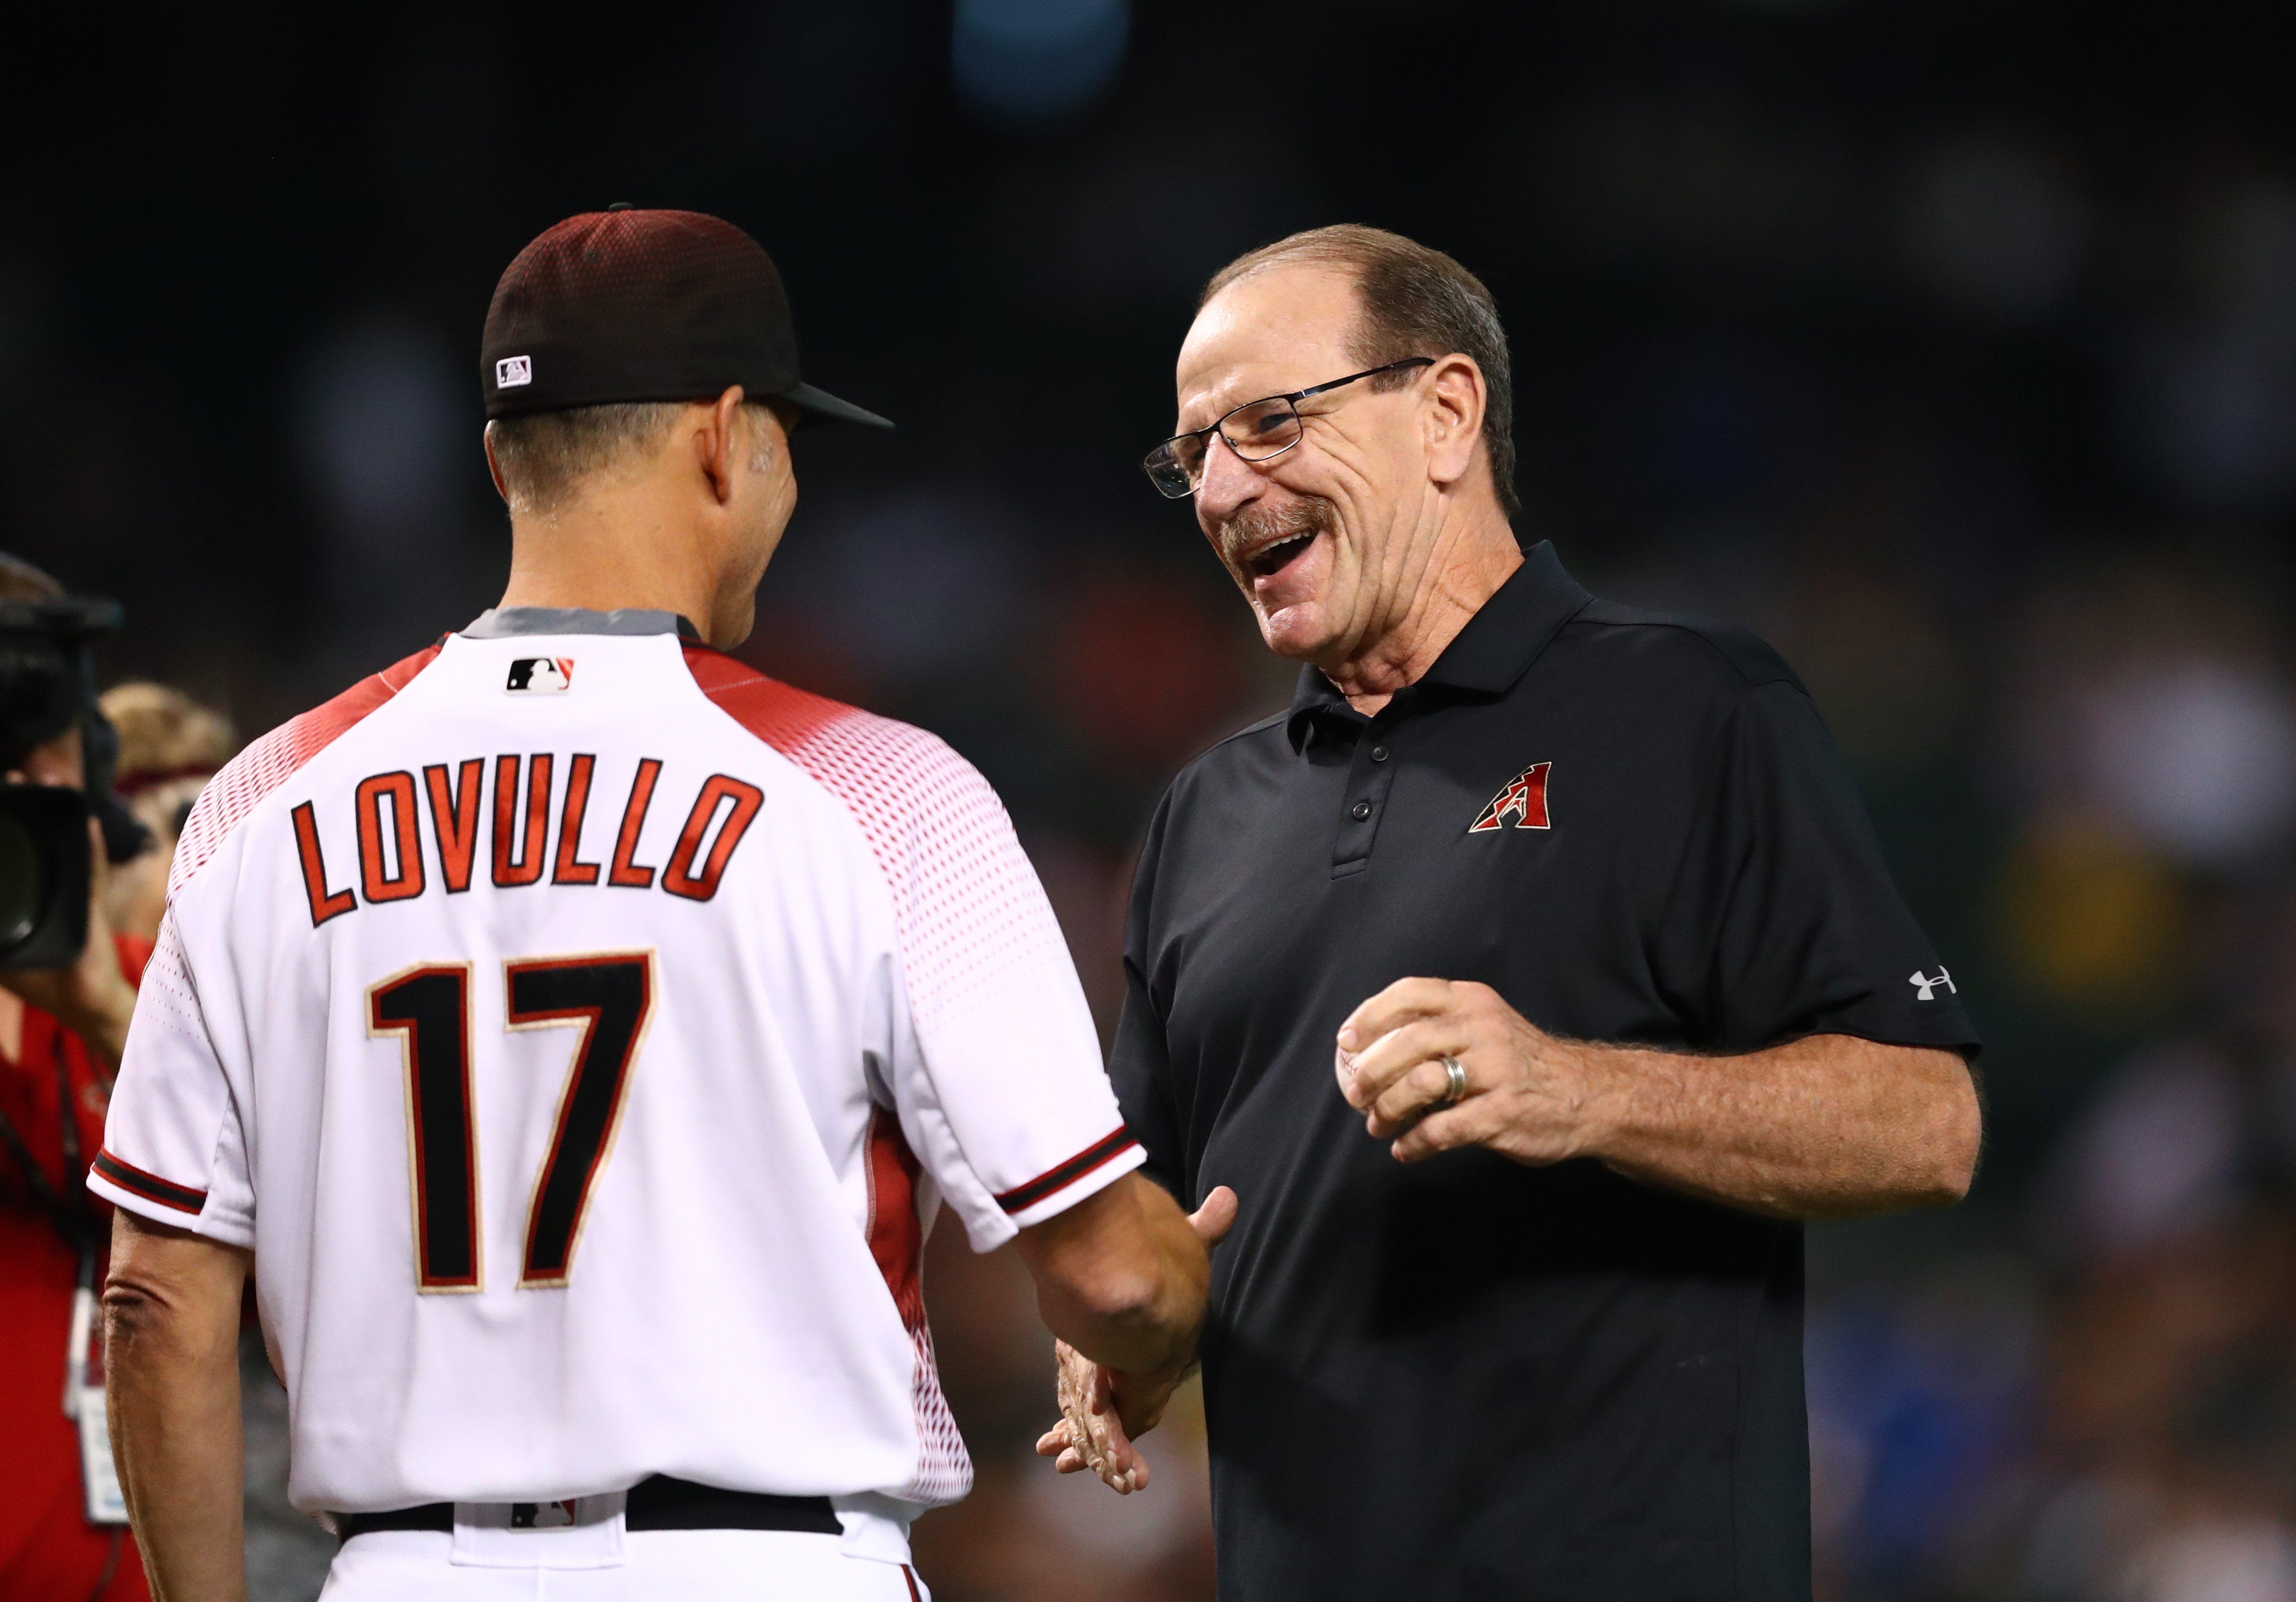 Diamondbacks analyst Bob Brenly taking leave of absence, will undergo sensitivity training after comments about Marcus Stroman